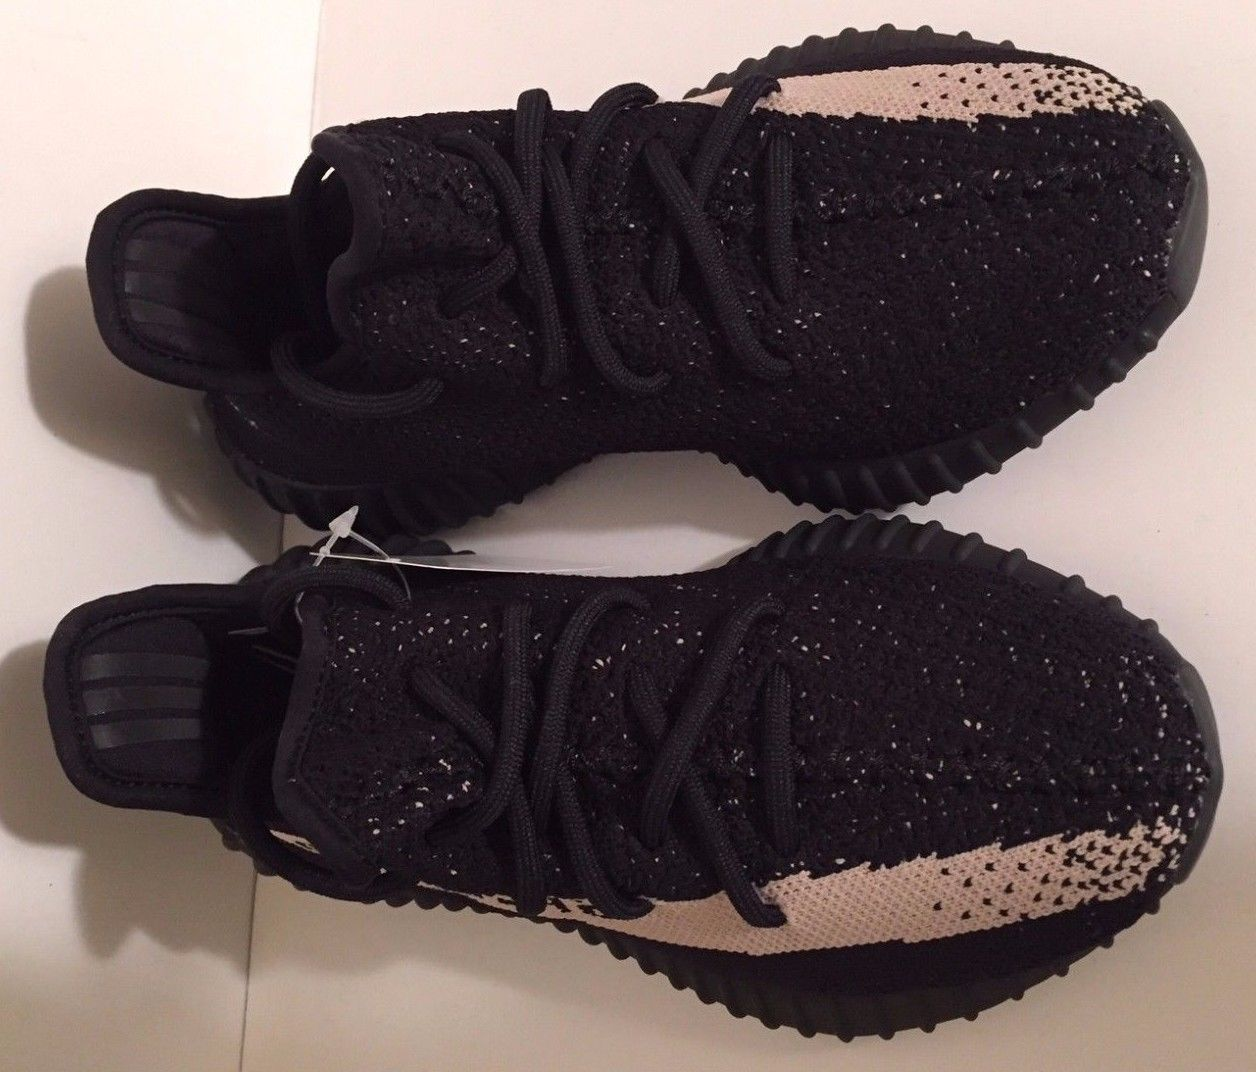 ADIDAS YEEZY 350 V2 Boost Low SPLY Kanye West Black White Oreo BY1604 IN HAND